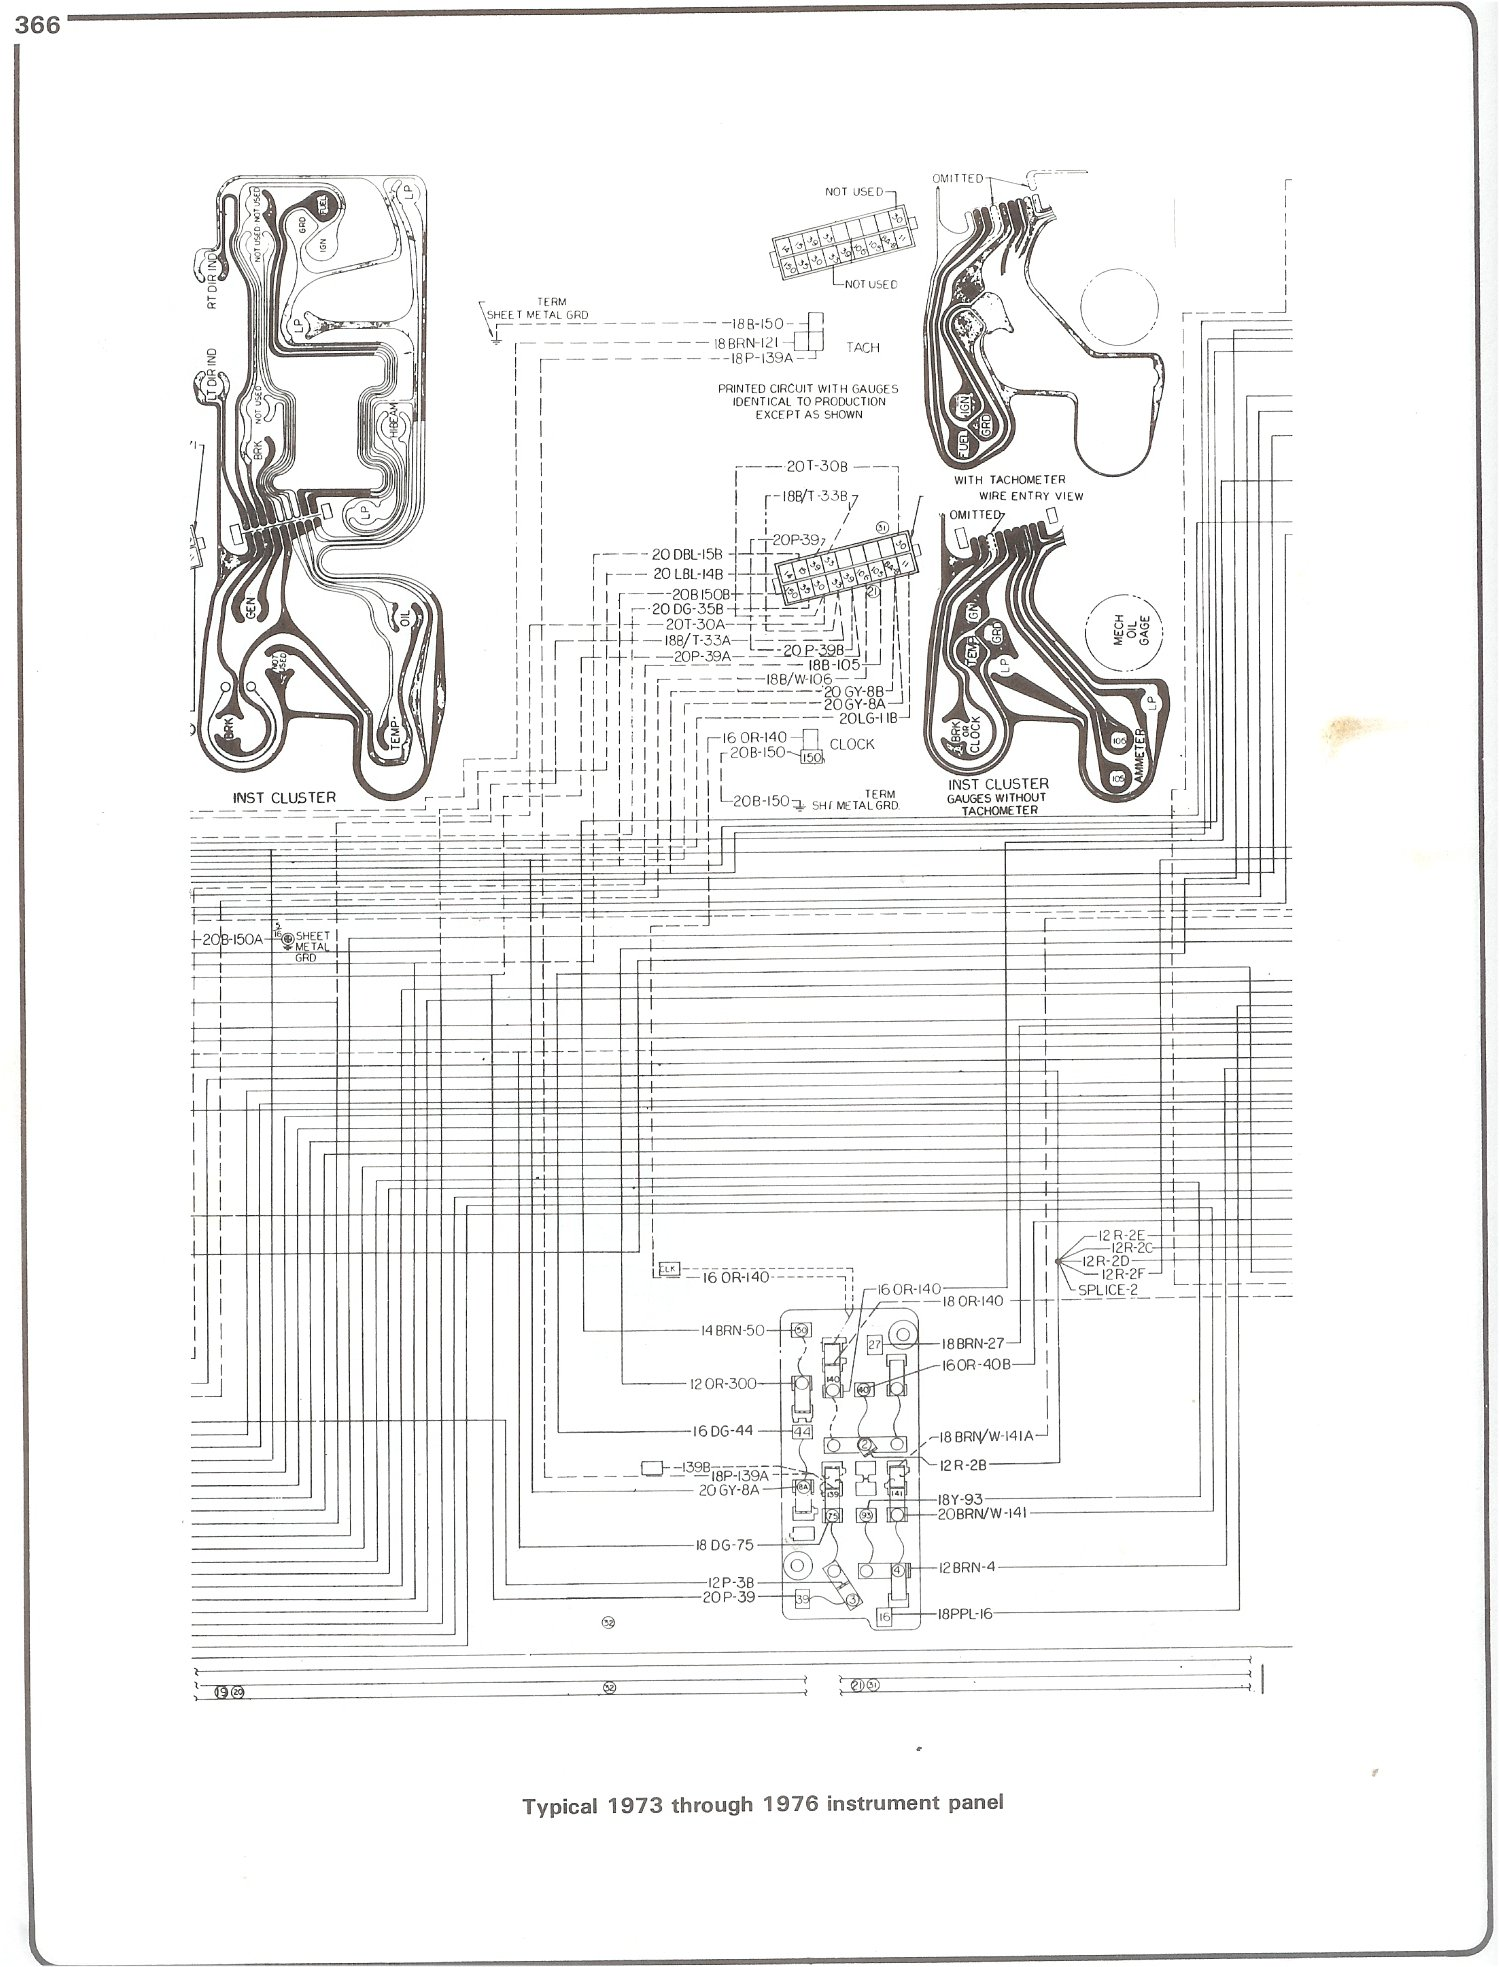 73 76_instrument complete 73 87 wiring diagrams 1937 Chevy Wiring Diagram at reclaimingppi.co